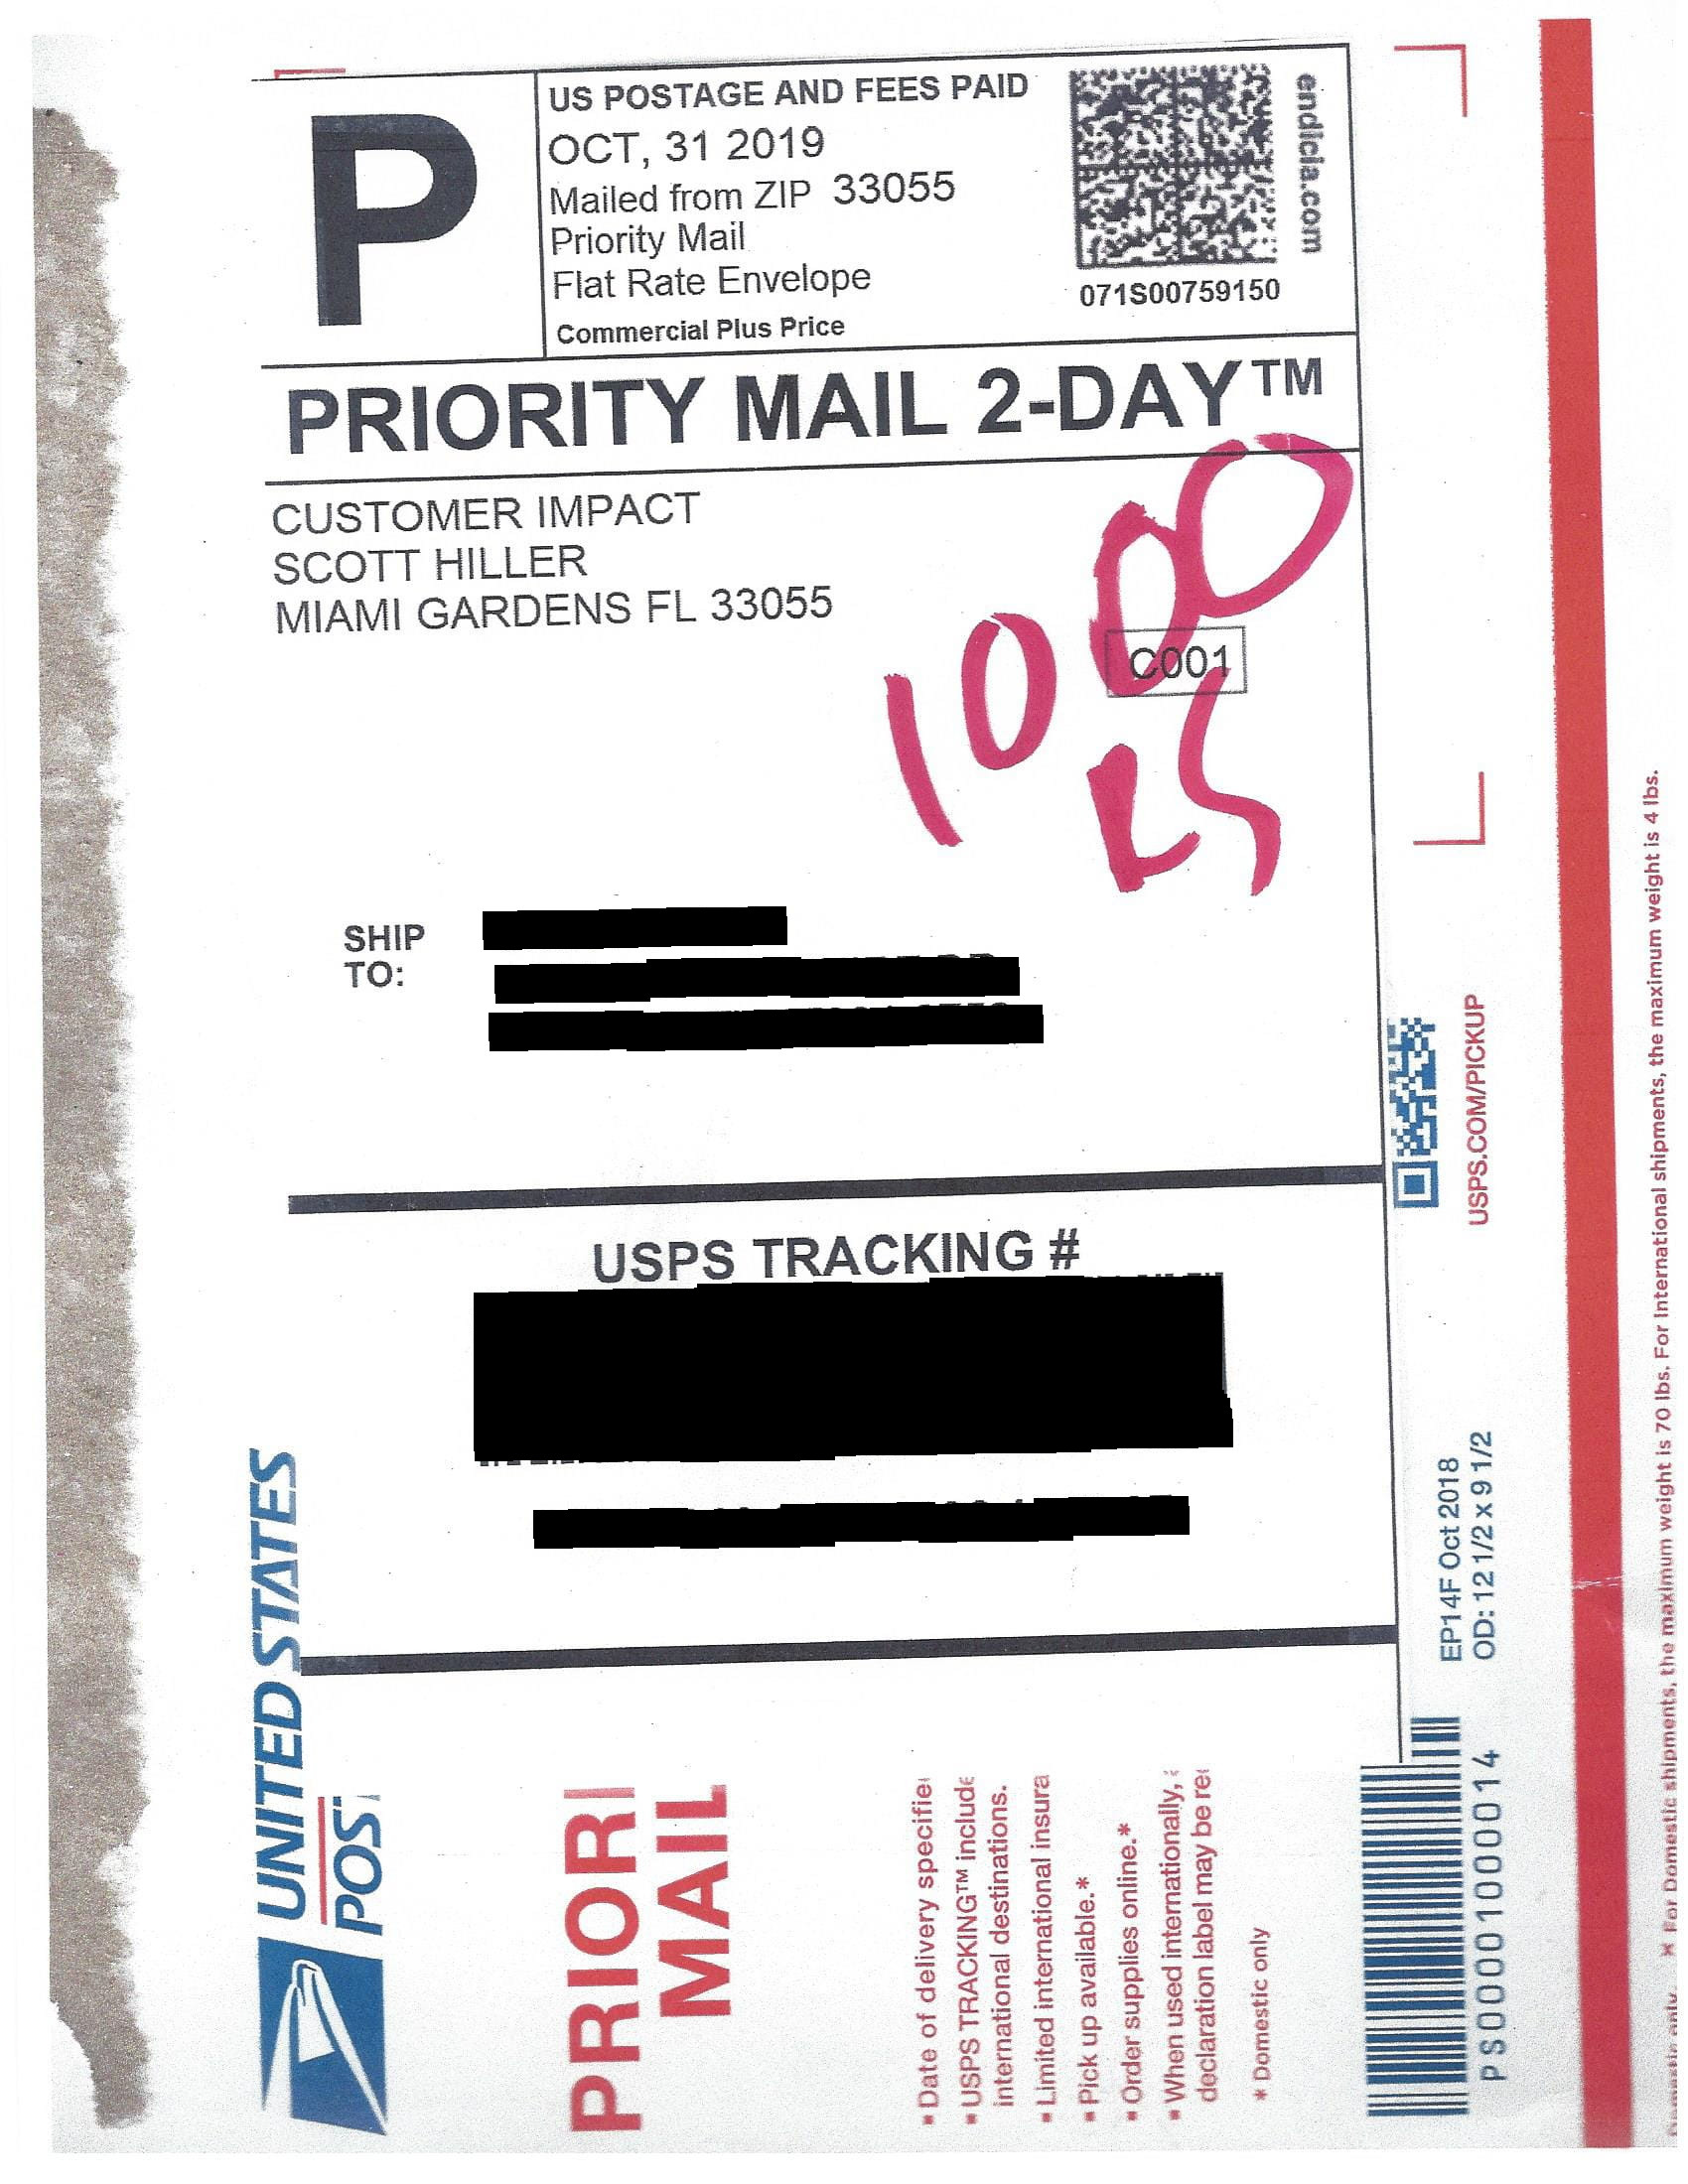 Mail Scam Materials - Package Mailer